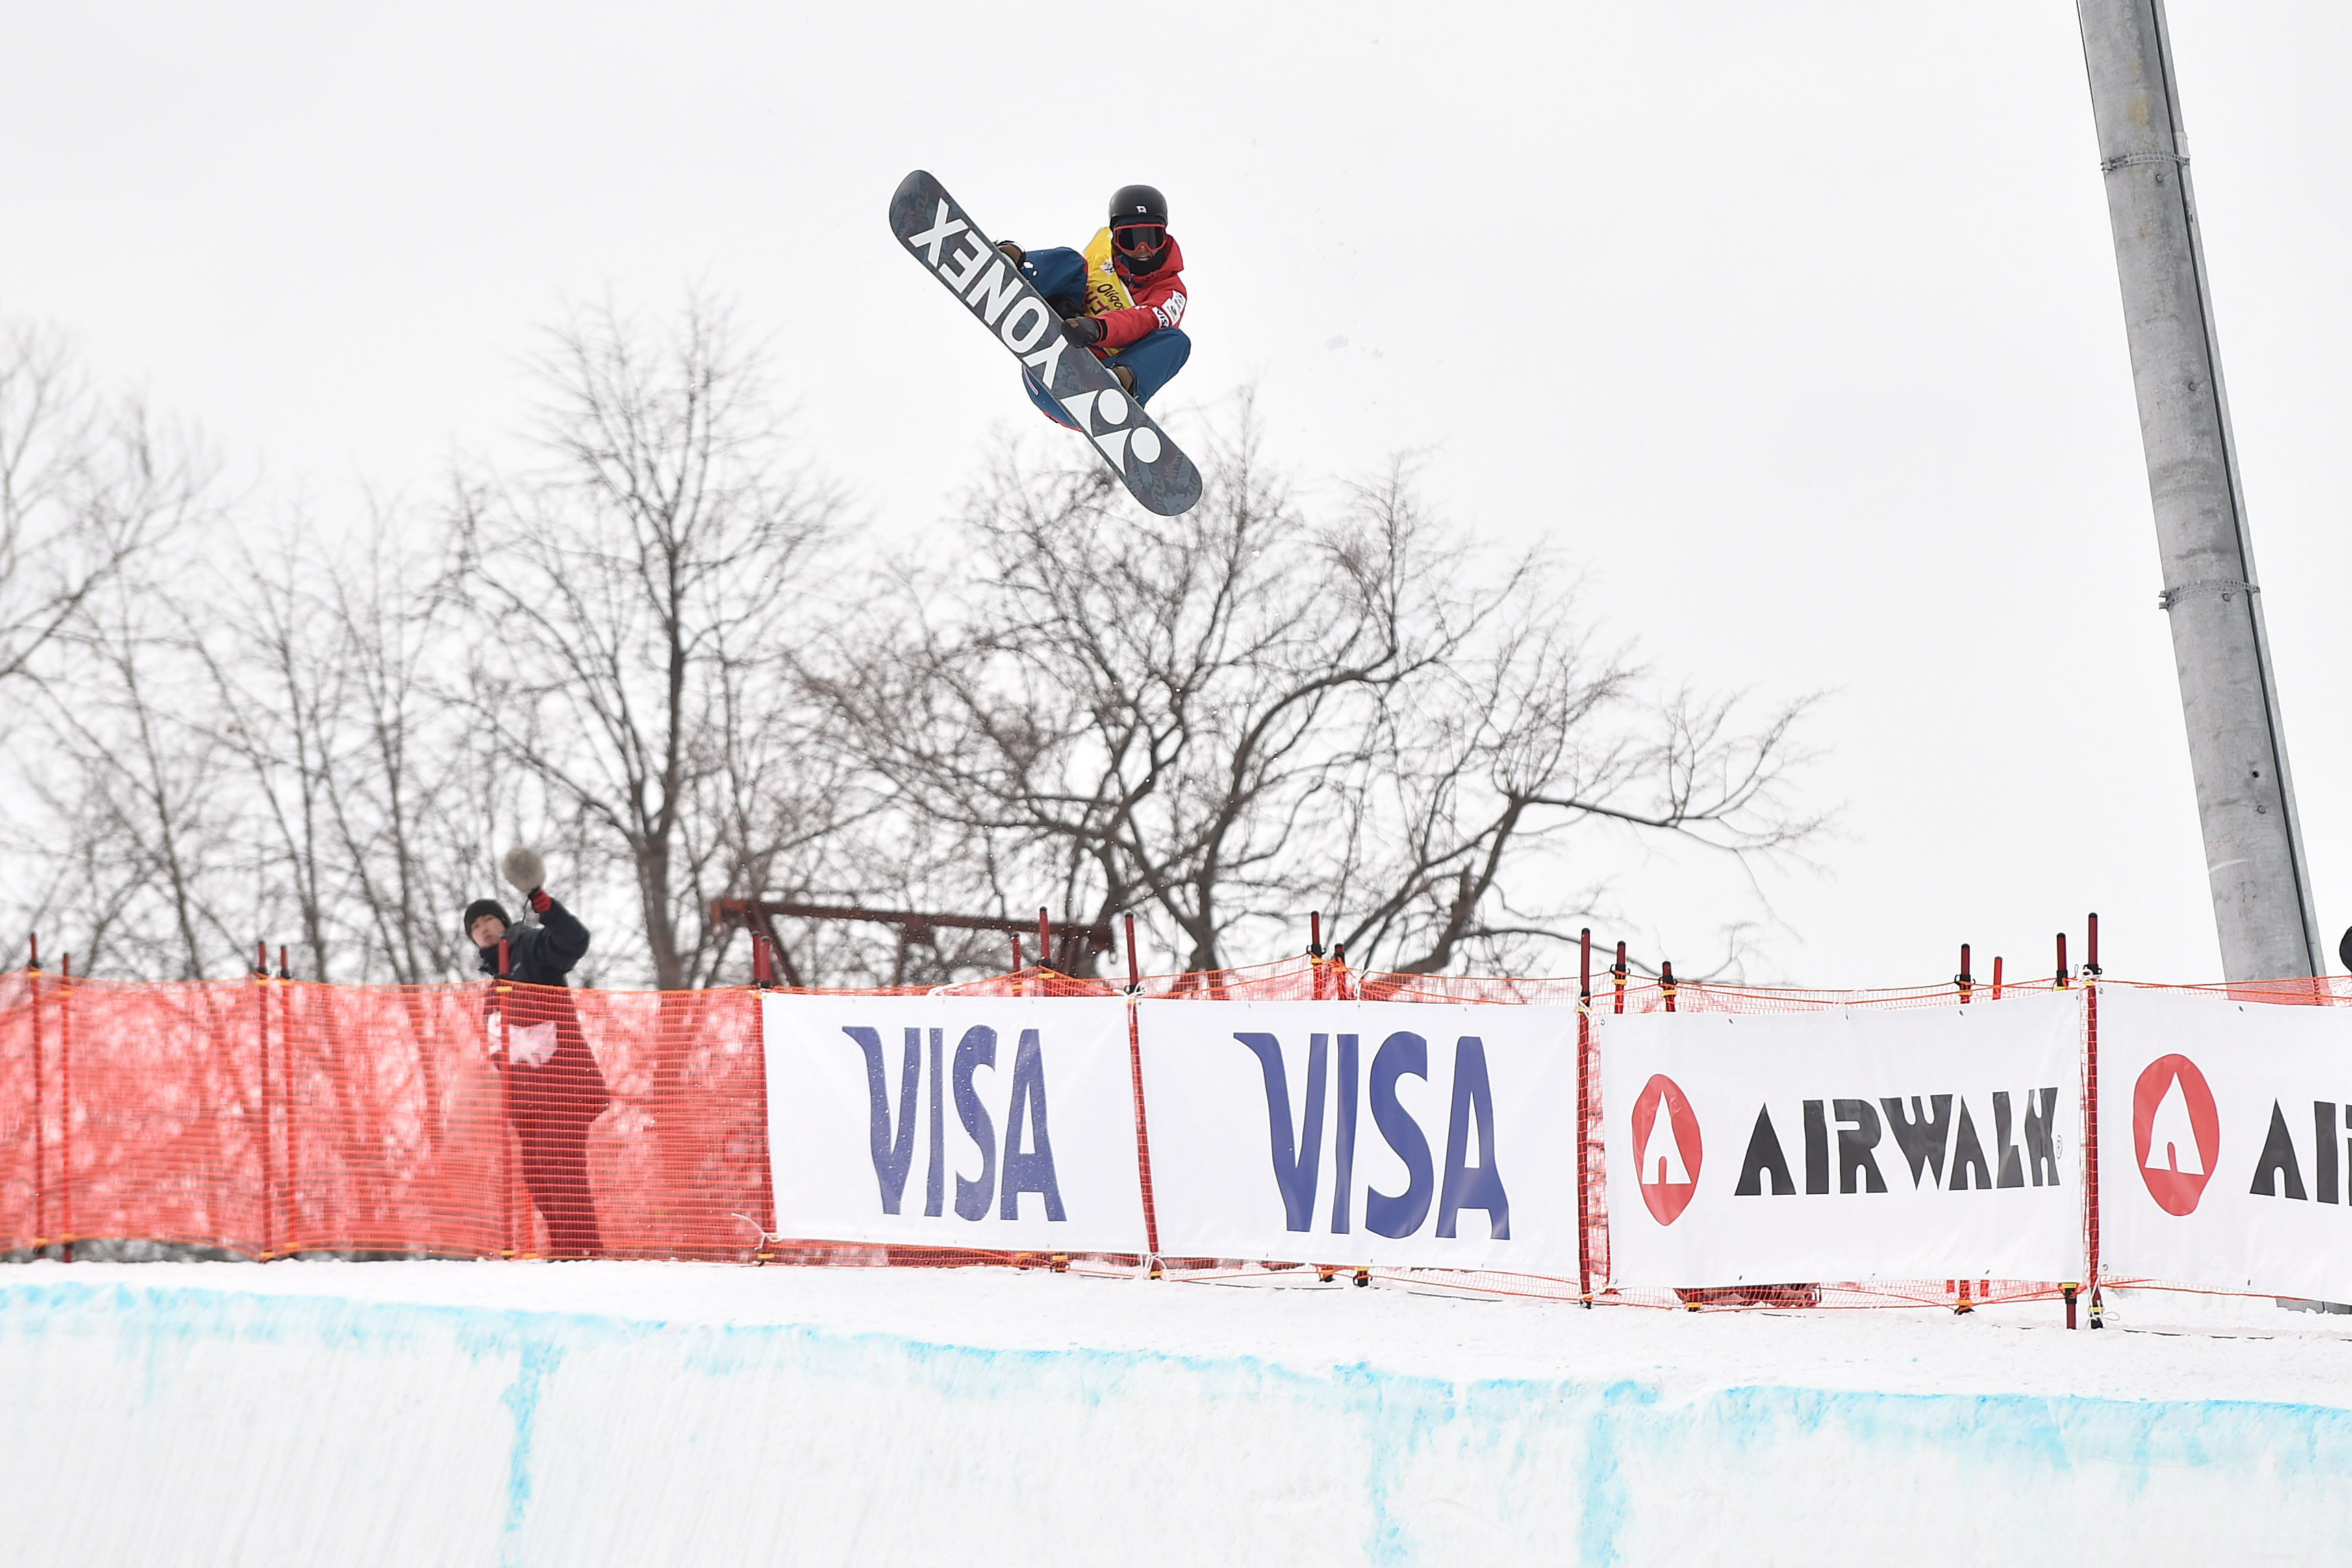 Ryo Aono of Japan competes in the halfpipe world cup qualification in Sapporo, Japan